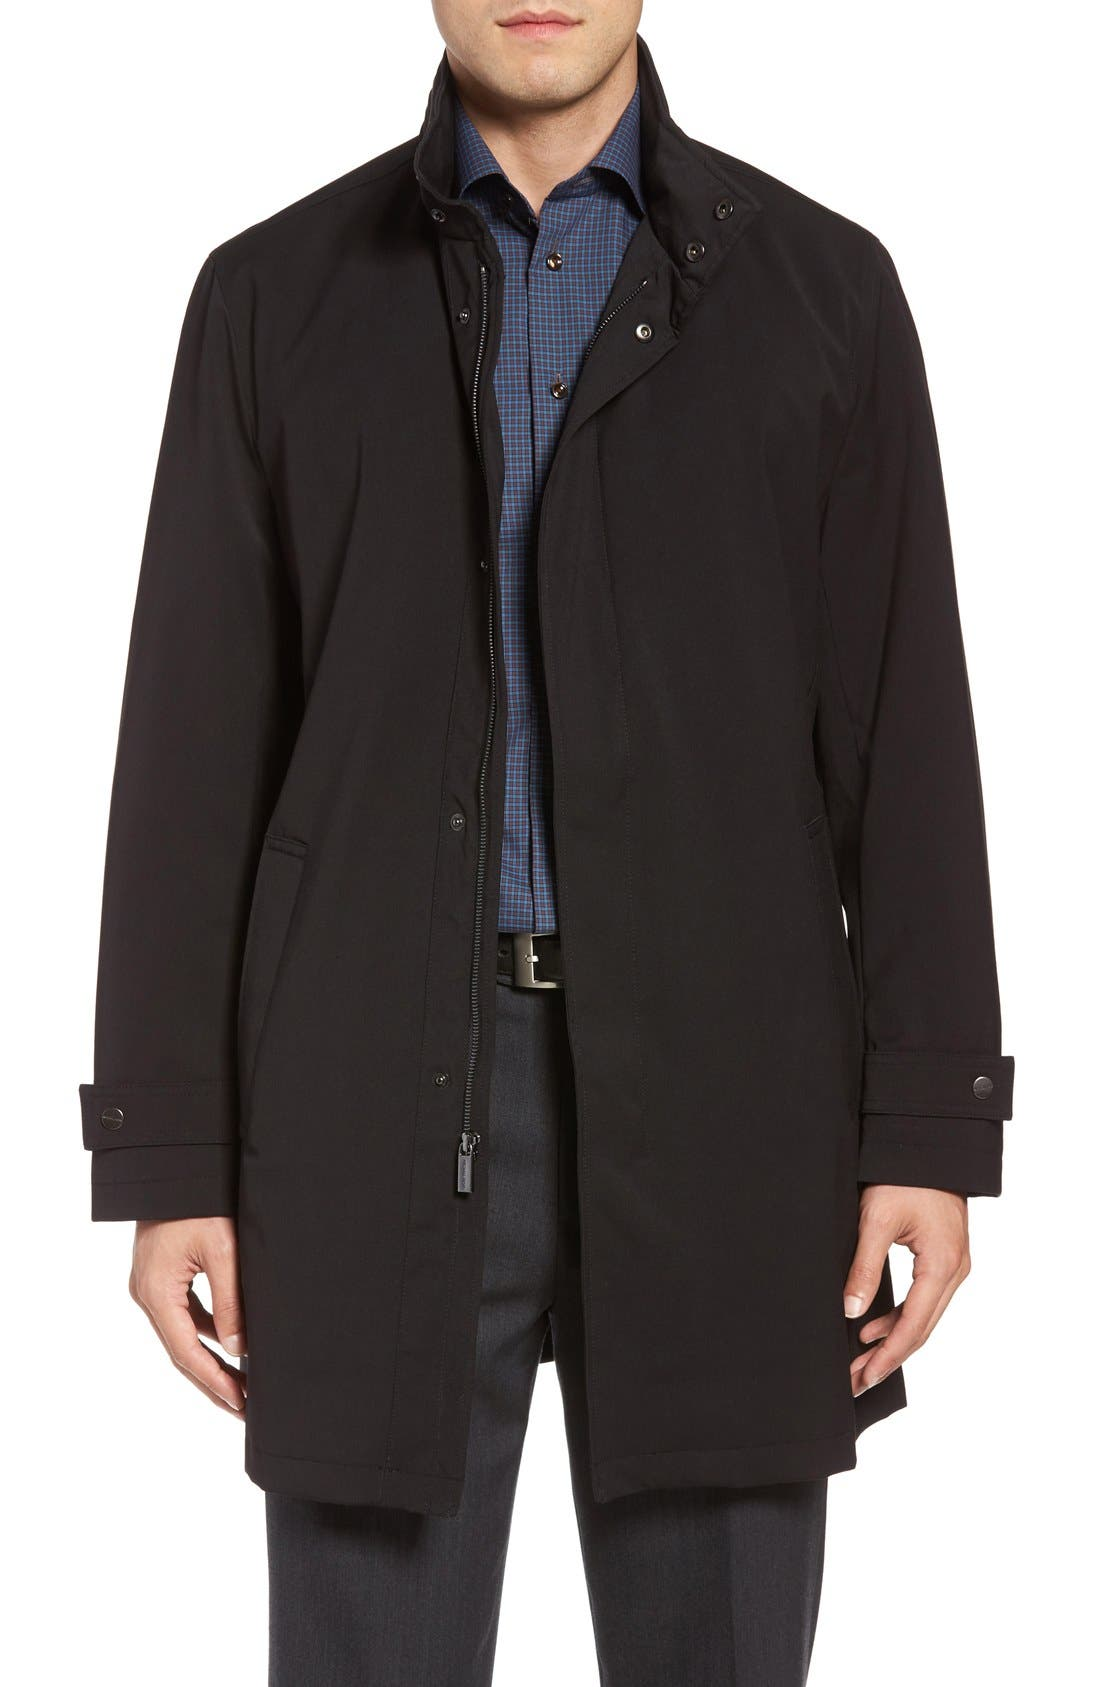 Michael Kors Stretch Rain Coat